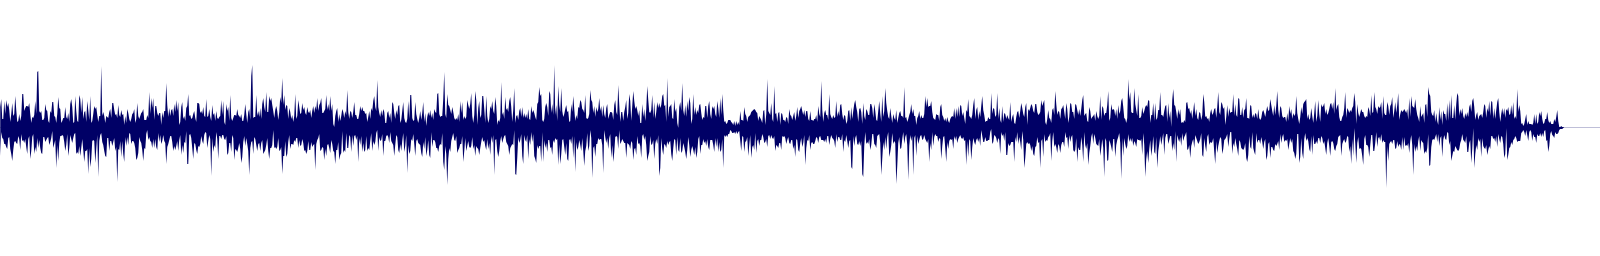 waveform of track #152070